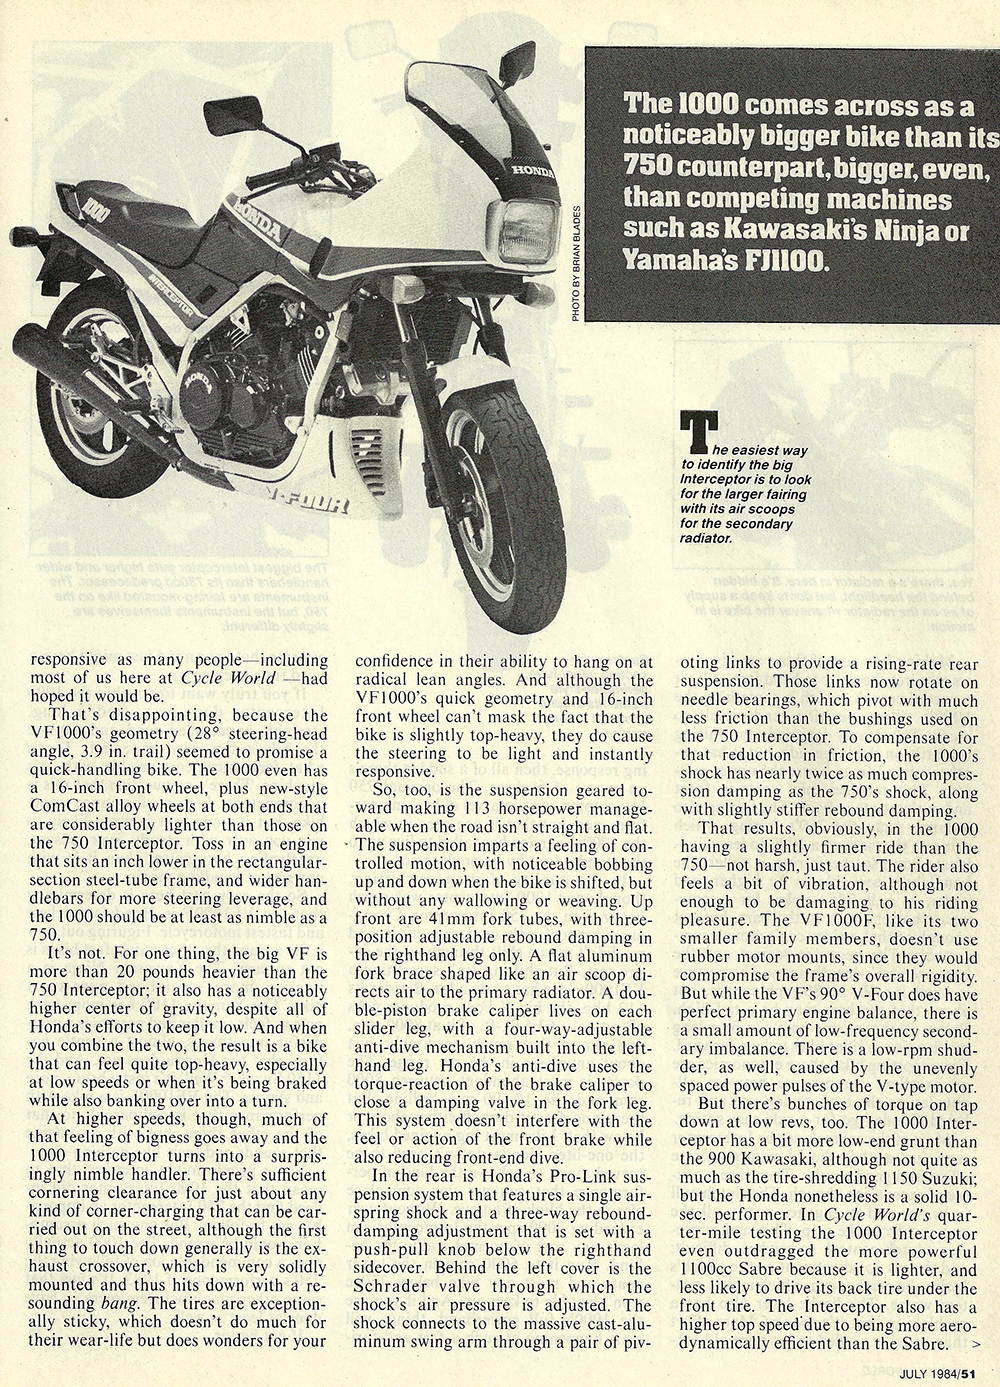 1984 Honda 1000 Interceptor 04.jpg